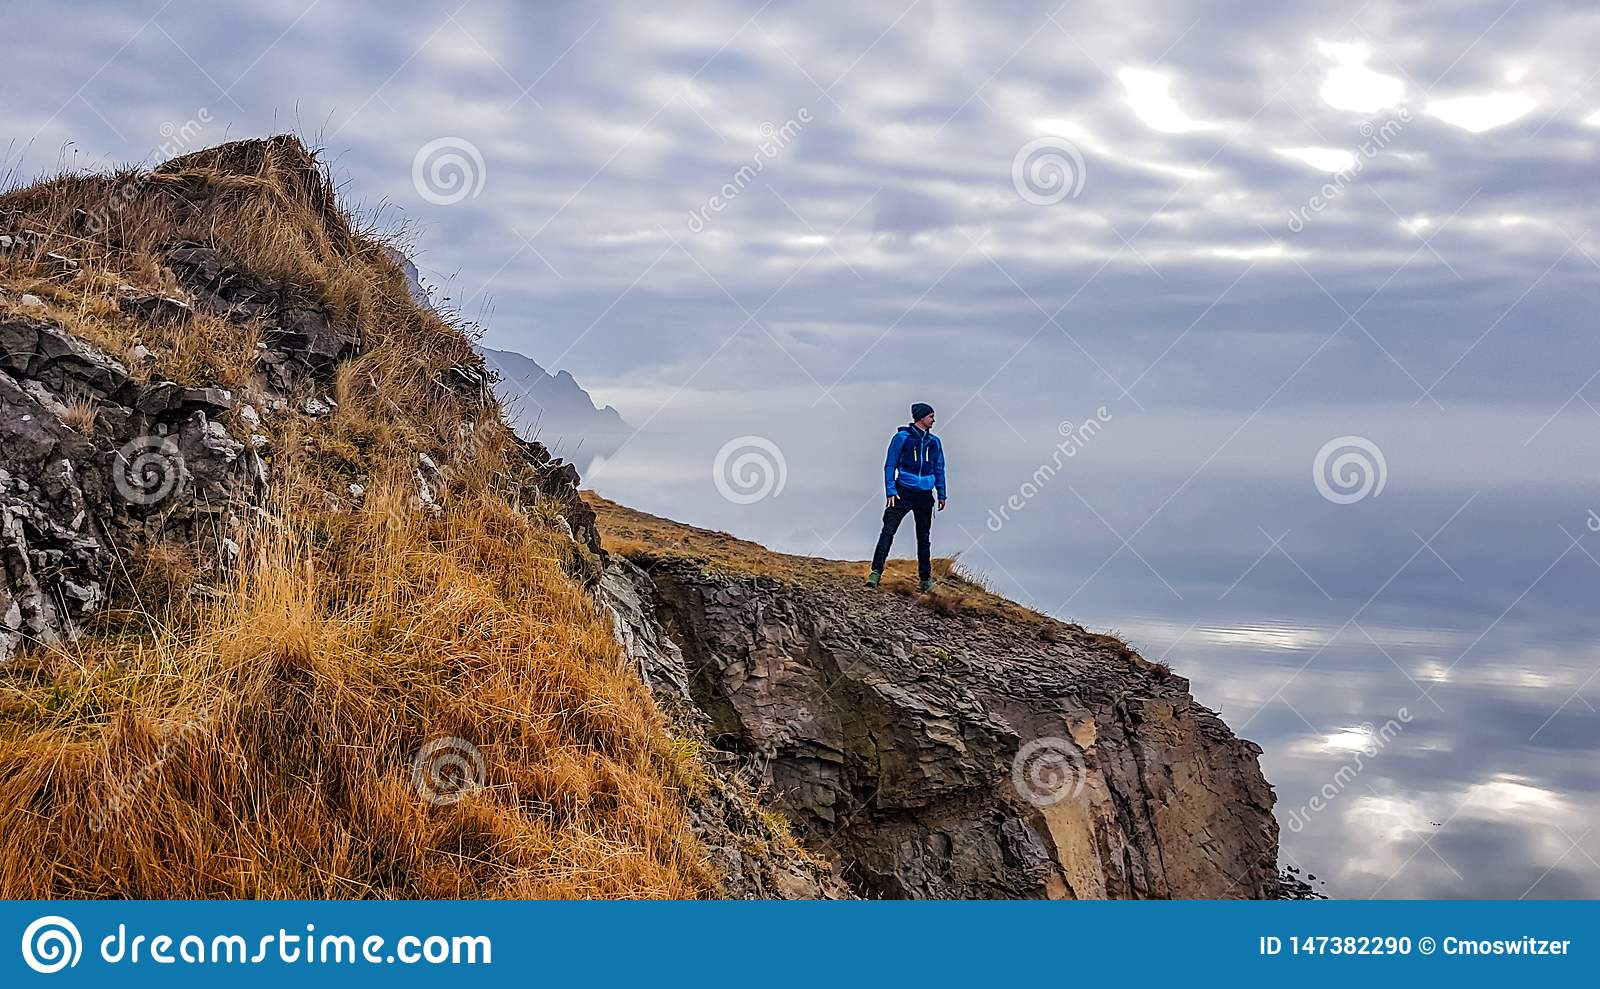 Iceland - Young man standing at the cliff with an endless horizon